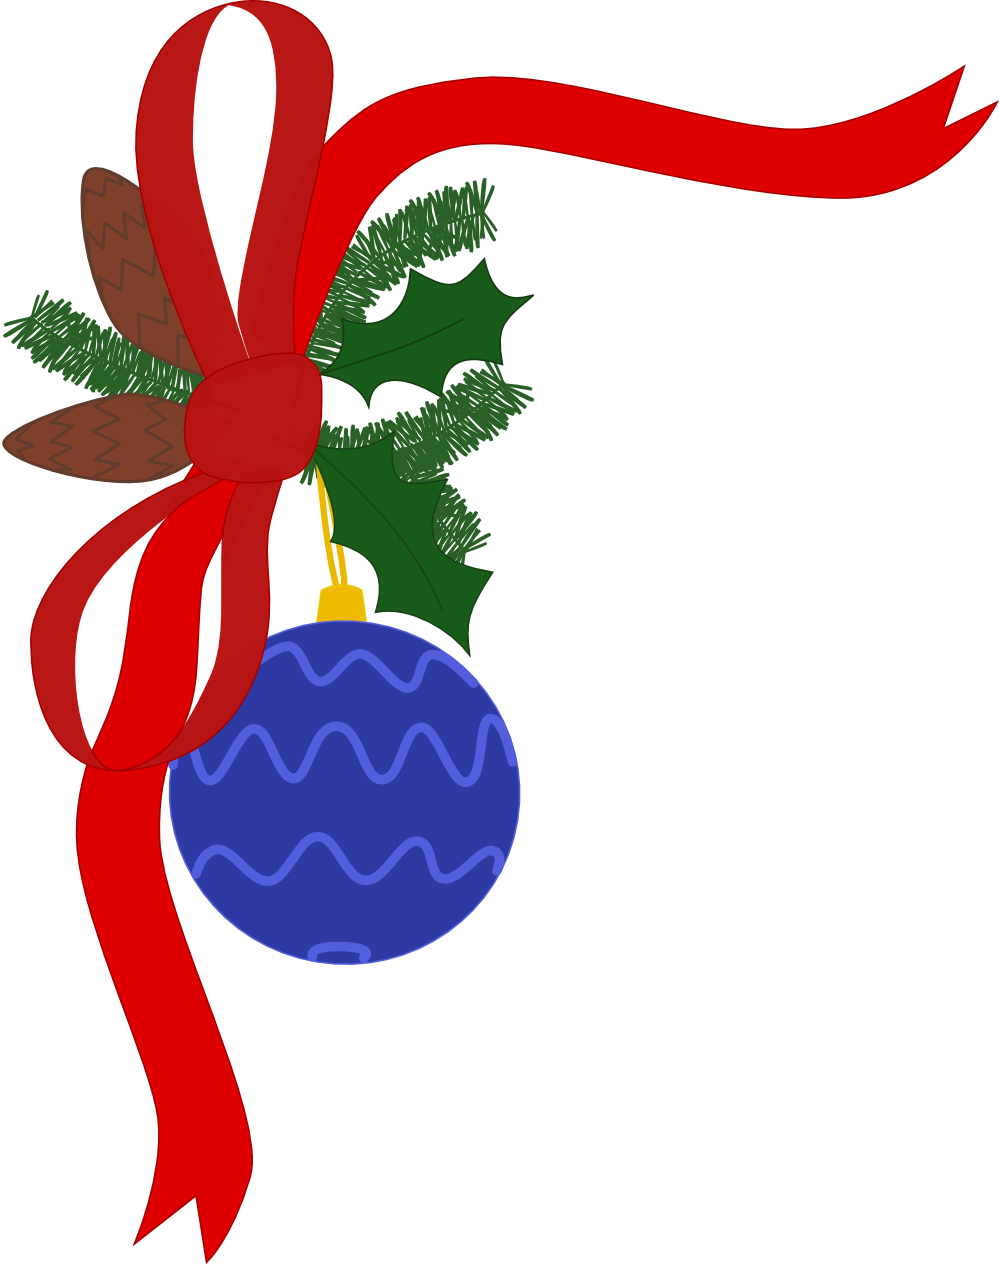 Free christmas holiday download. Holidays clipart thing